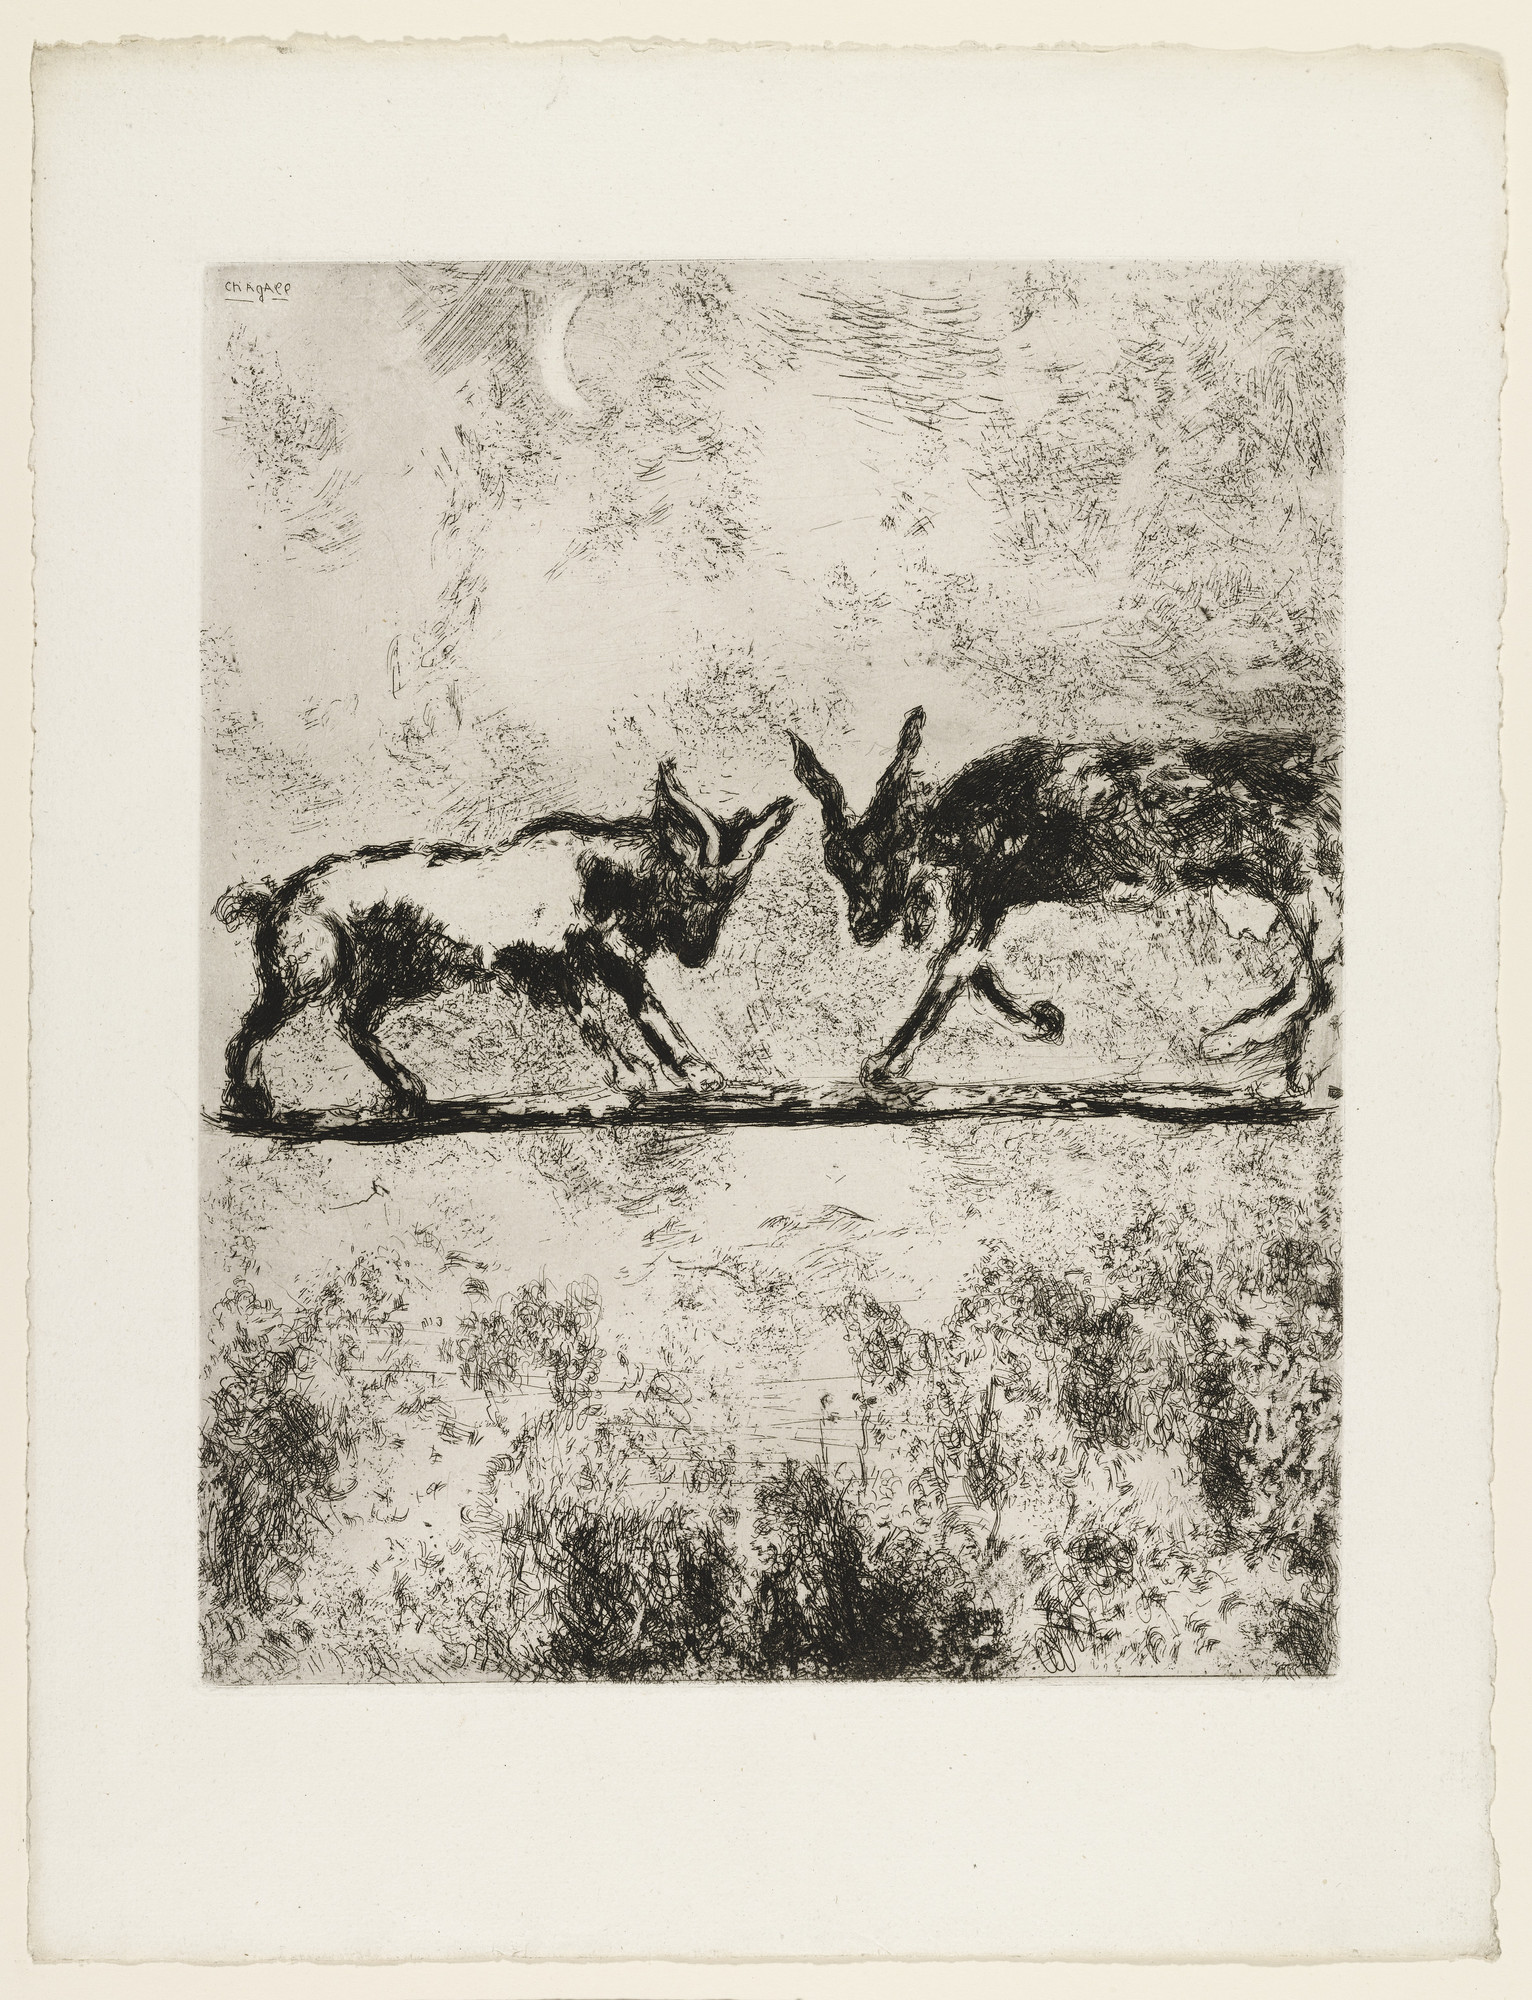 Marc Chagall. The Two Goats. (1927)